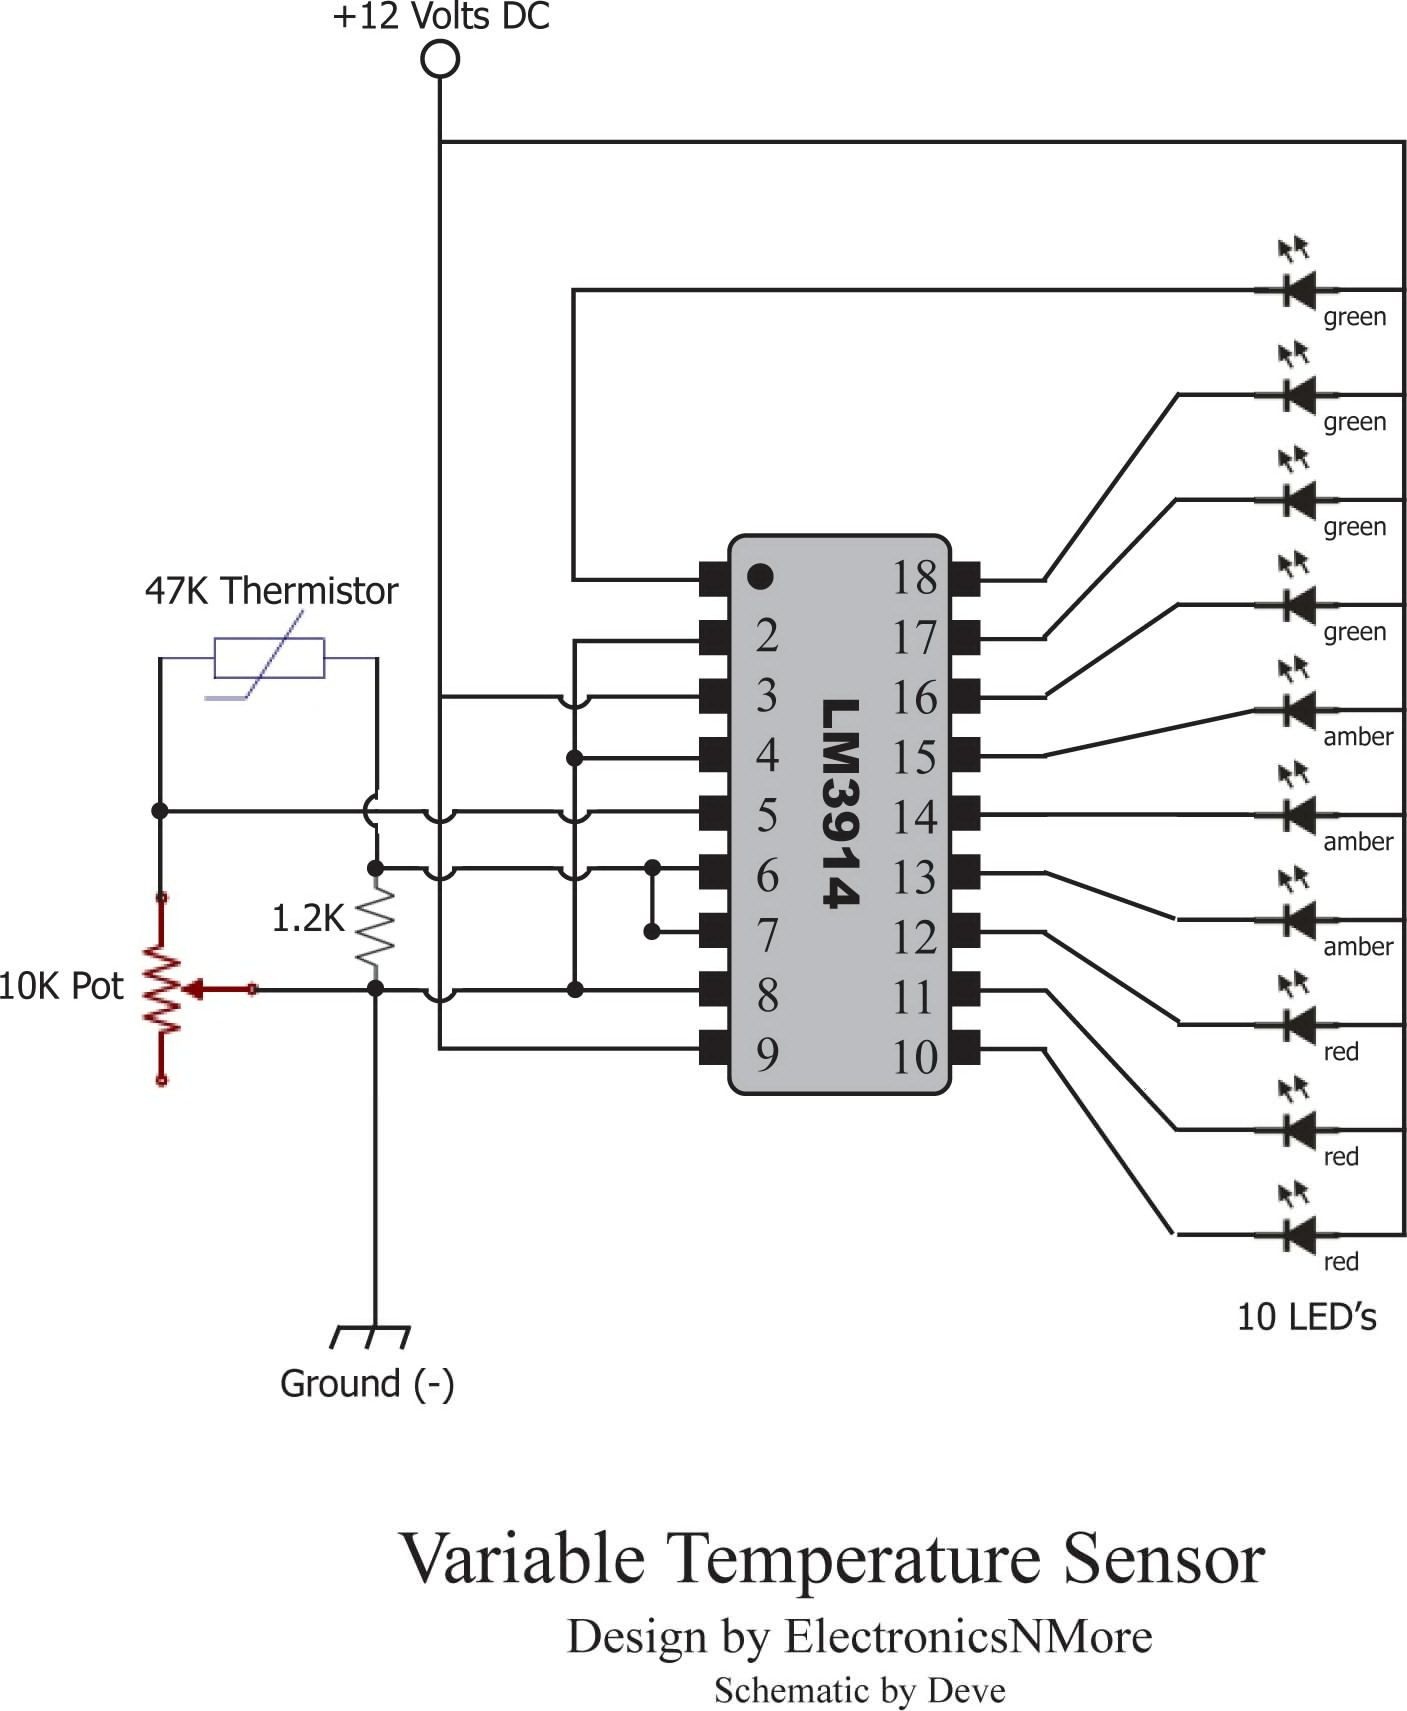 Tyco Relay Wiring Diagram Free For You 12 Volt Spdt 5 Blade V Rh Pinterest Com Bosch Pin Relays 12v Spst